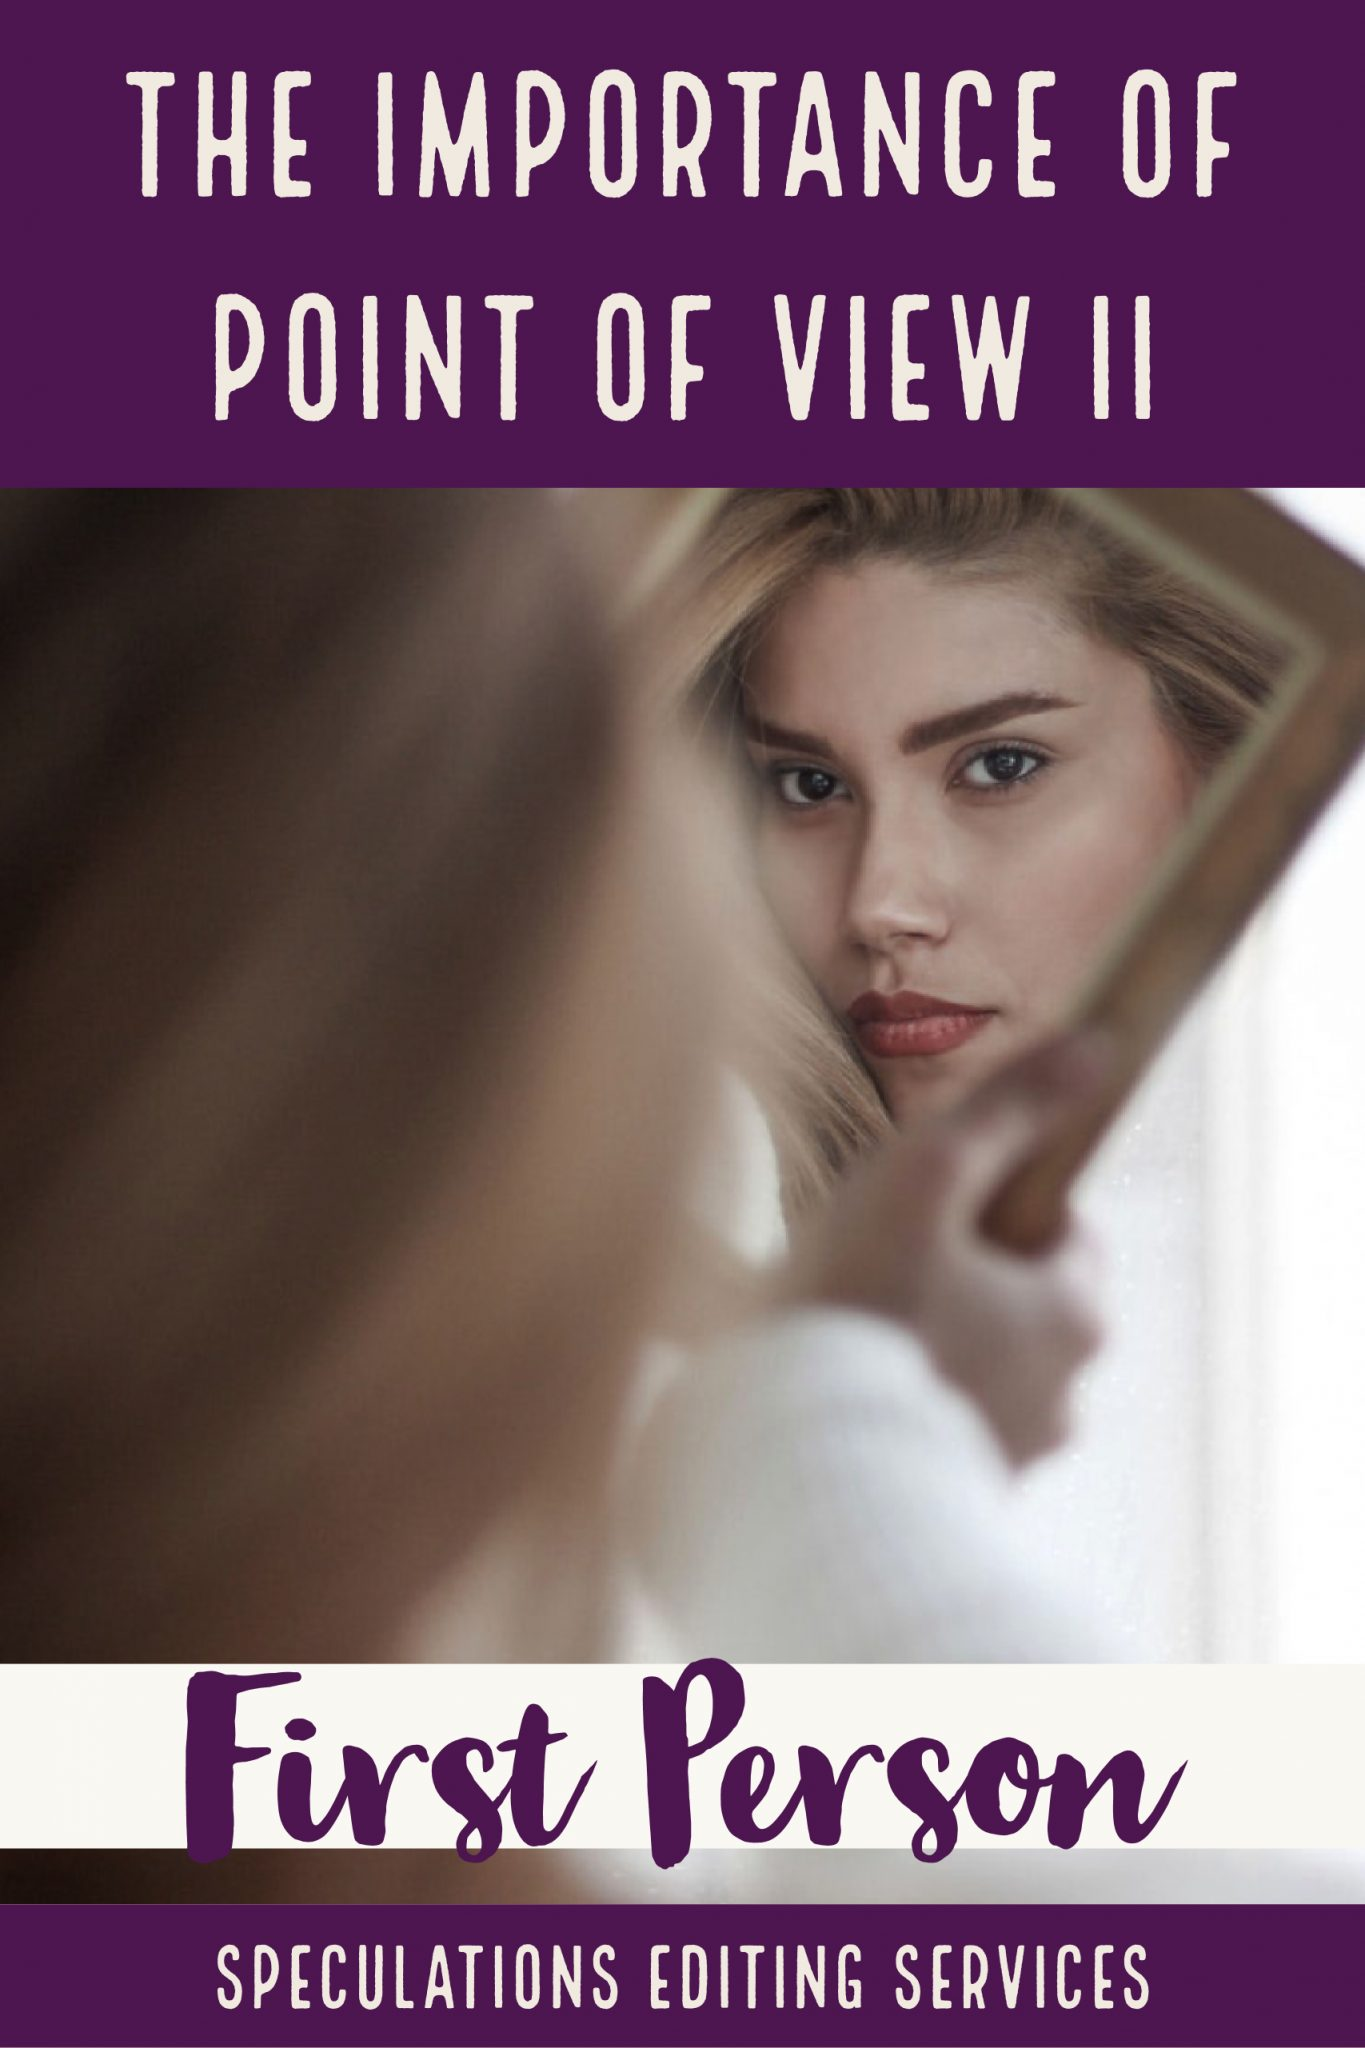 the importance of point of view Perspective & point of view montanna cheng 15 march 2007 definition(s): 1 the capacity to view things in their true relations or relative importance  a position or from which something is considered or evaluated (merriam webster.